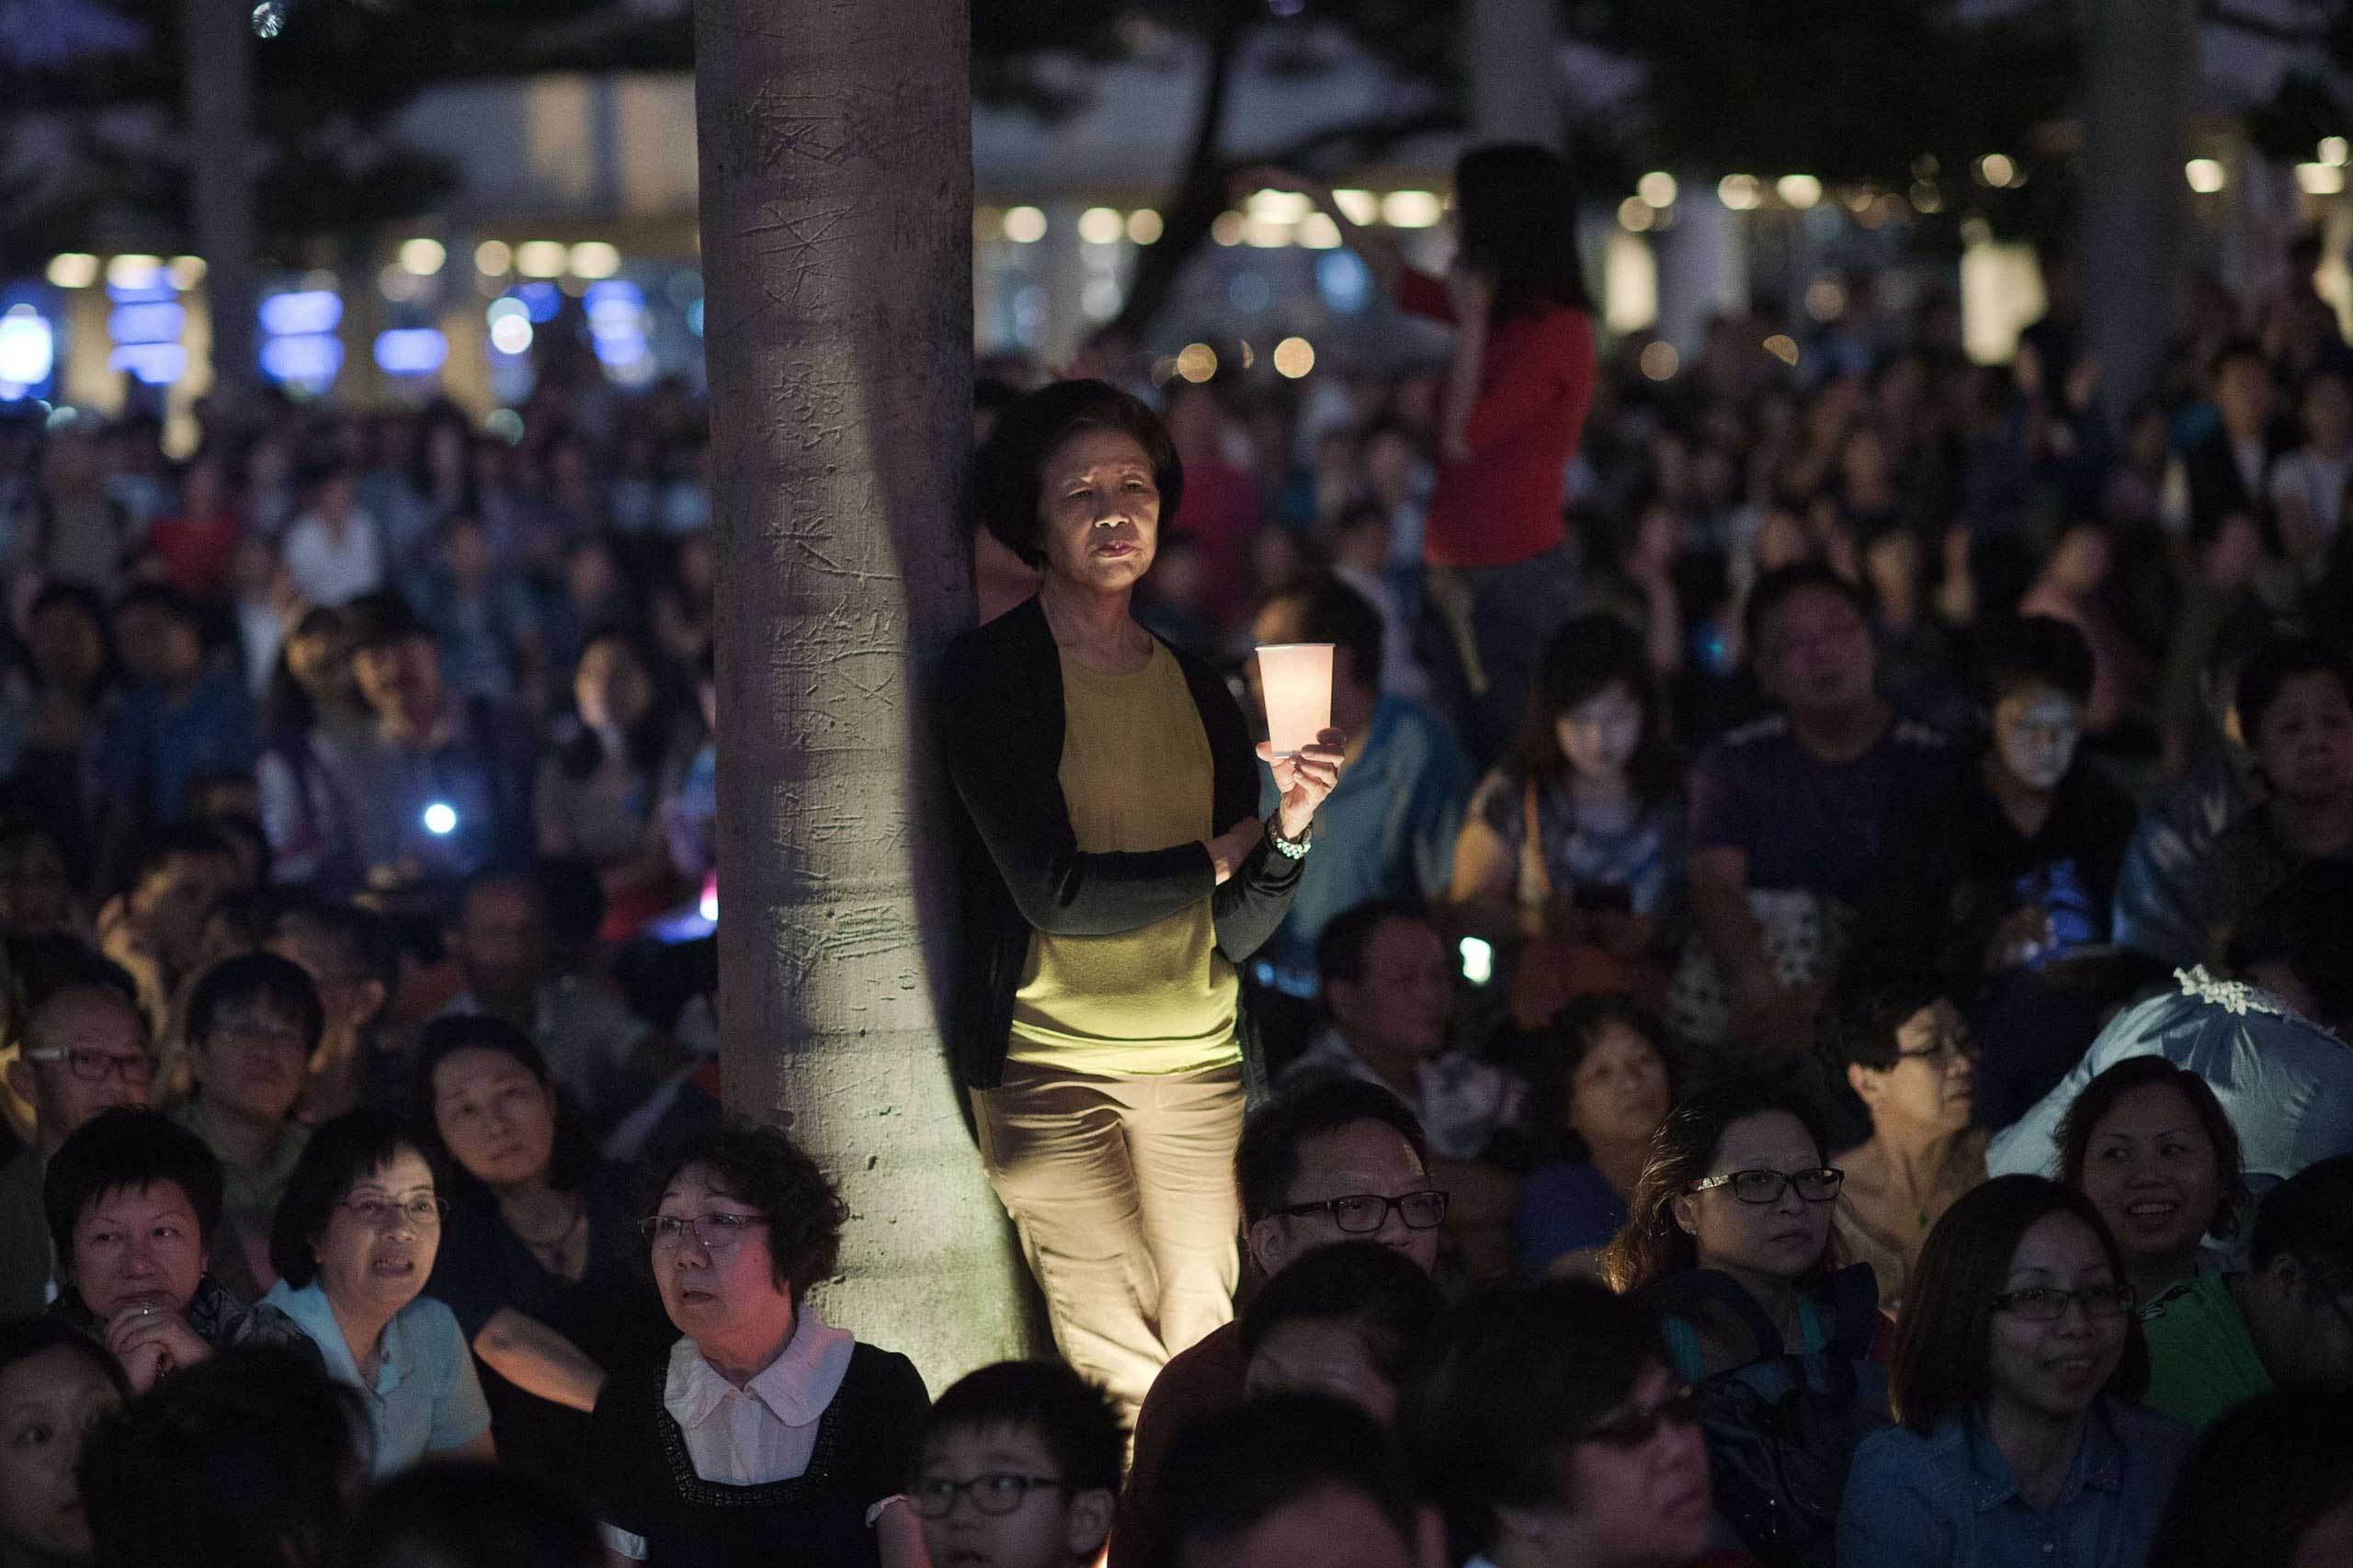 Oct. 25, 2014.                                Members of the pro-government Blue Ribbon group rally during a candlelit vigil in Hong Kong. A U.N. rights watchdog pressed Hong Kong to enact democratic reforms, saying moves so far fell short of what was needed.